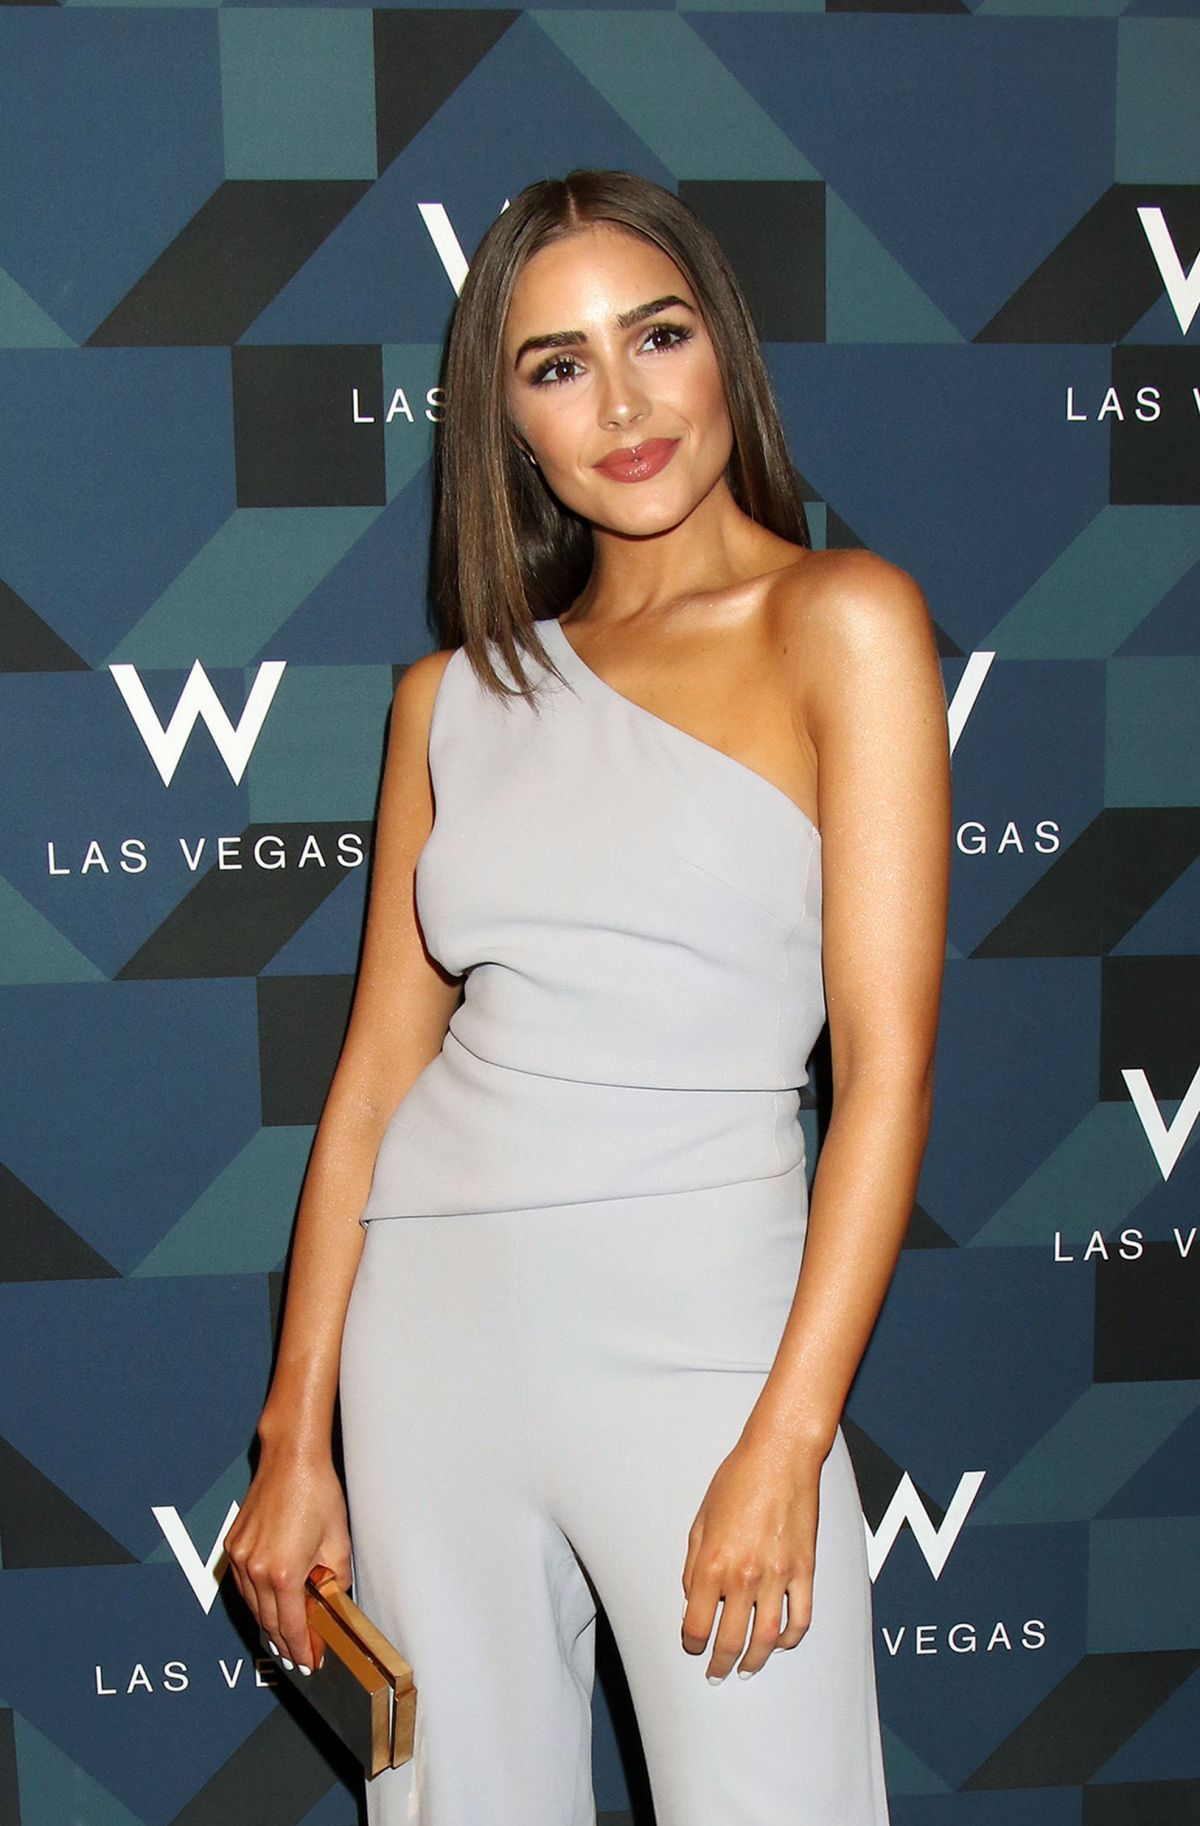 OLIVIA CULPO at W Las Vegas Grand Opening Celebration in Las Vegas 03/31/2017